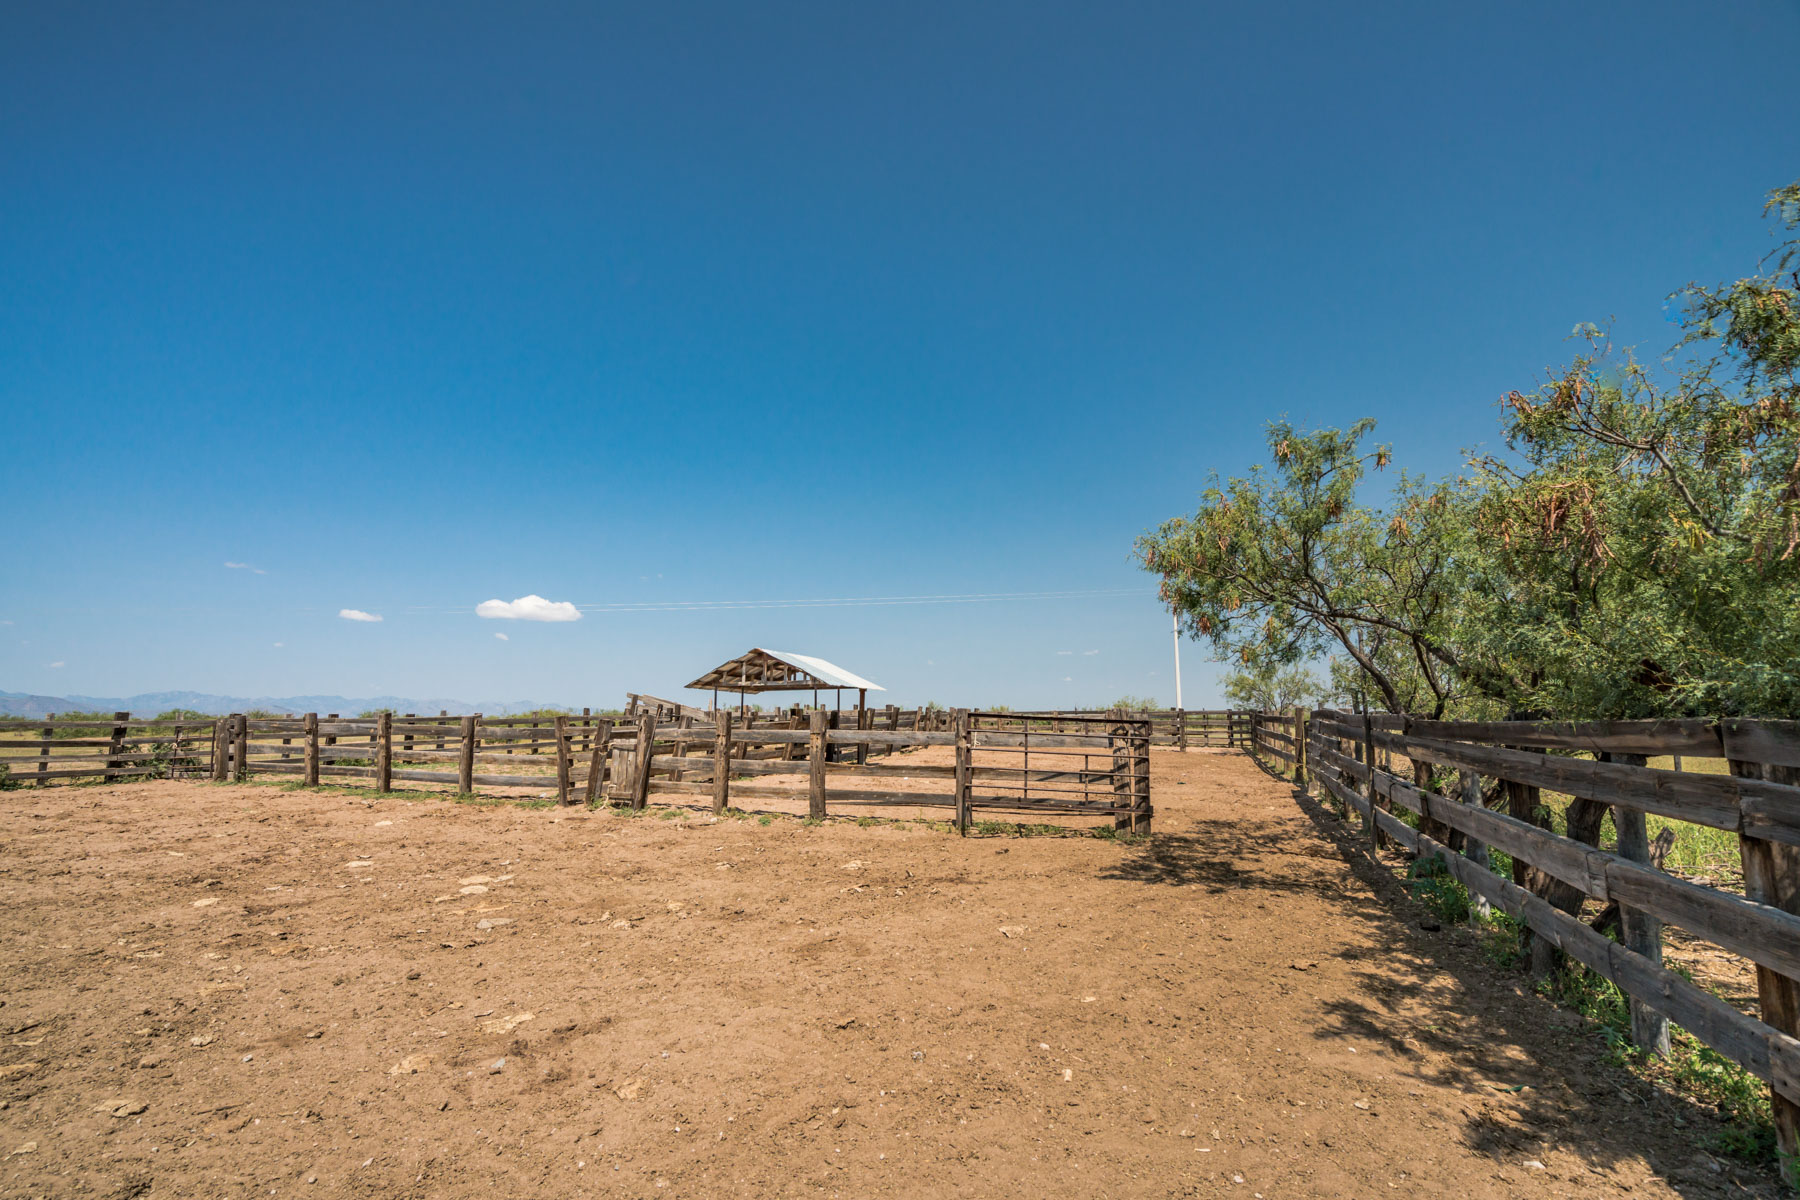 Additional photo for property listing at Berrendo-Palma Ranches Berrendo-Palma Other Mexico, 墨西哥的城市 0 墨西哥